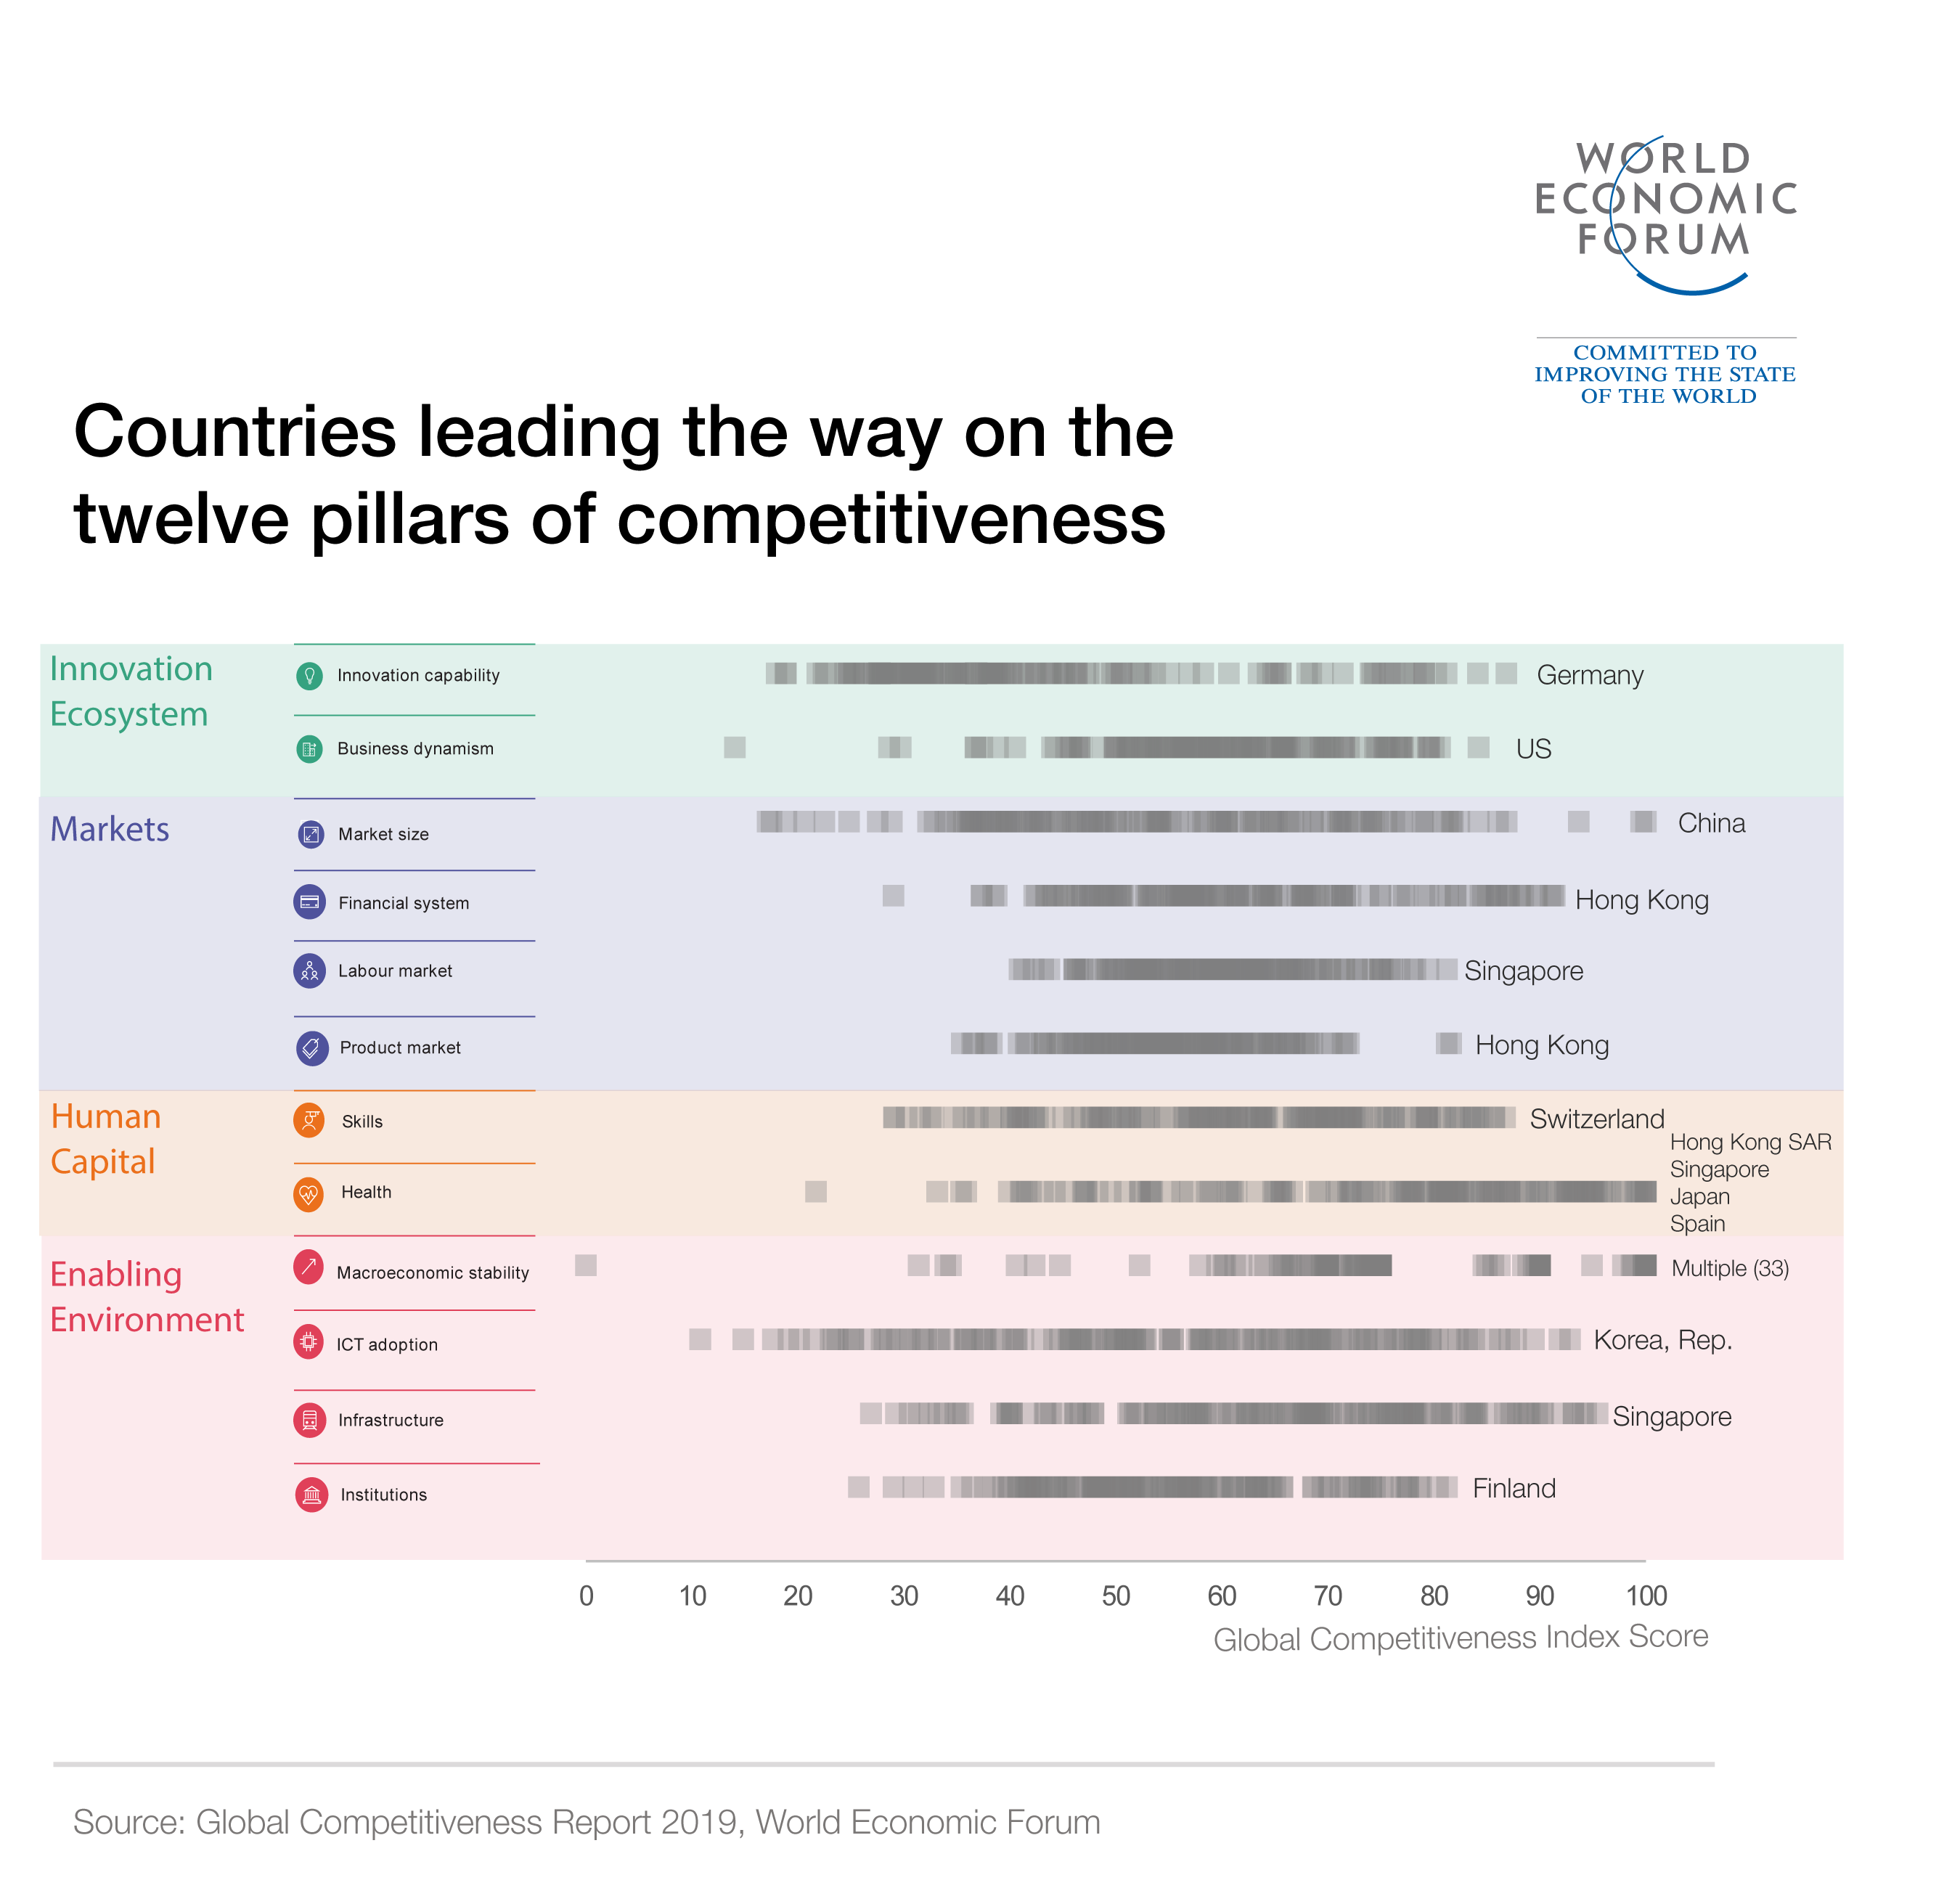 Countries leading the way on innovativeness, one of the 12 pillars of competitiveness